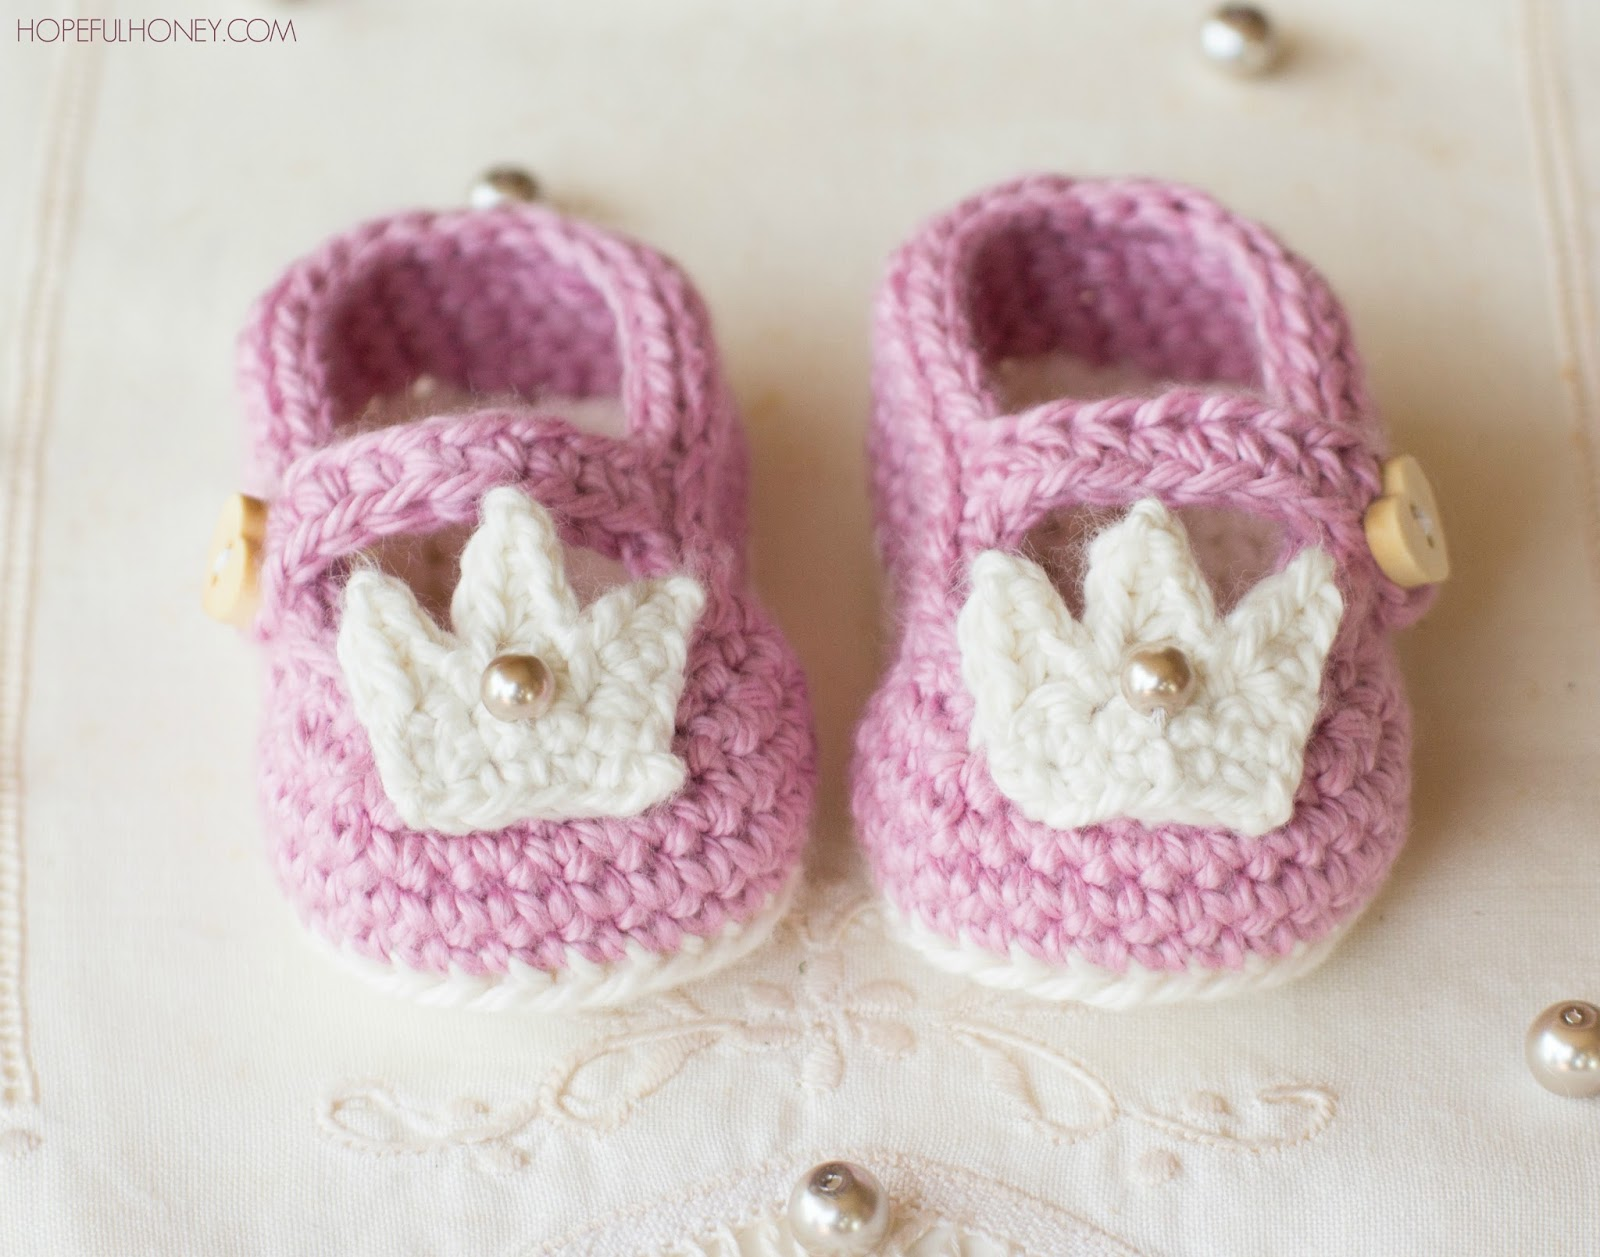 Free Crochet Pattern Baby Lion Booties : Hopeful Honey Craft, Crochet, Create: Princess Charlotte ...